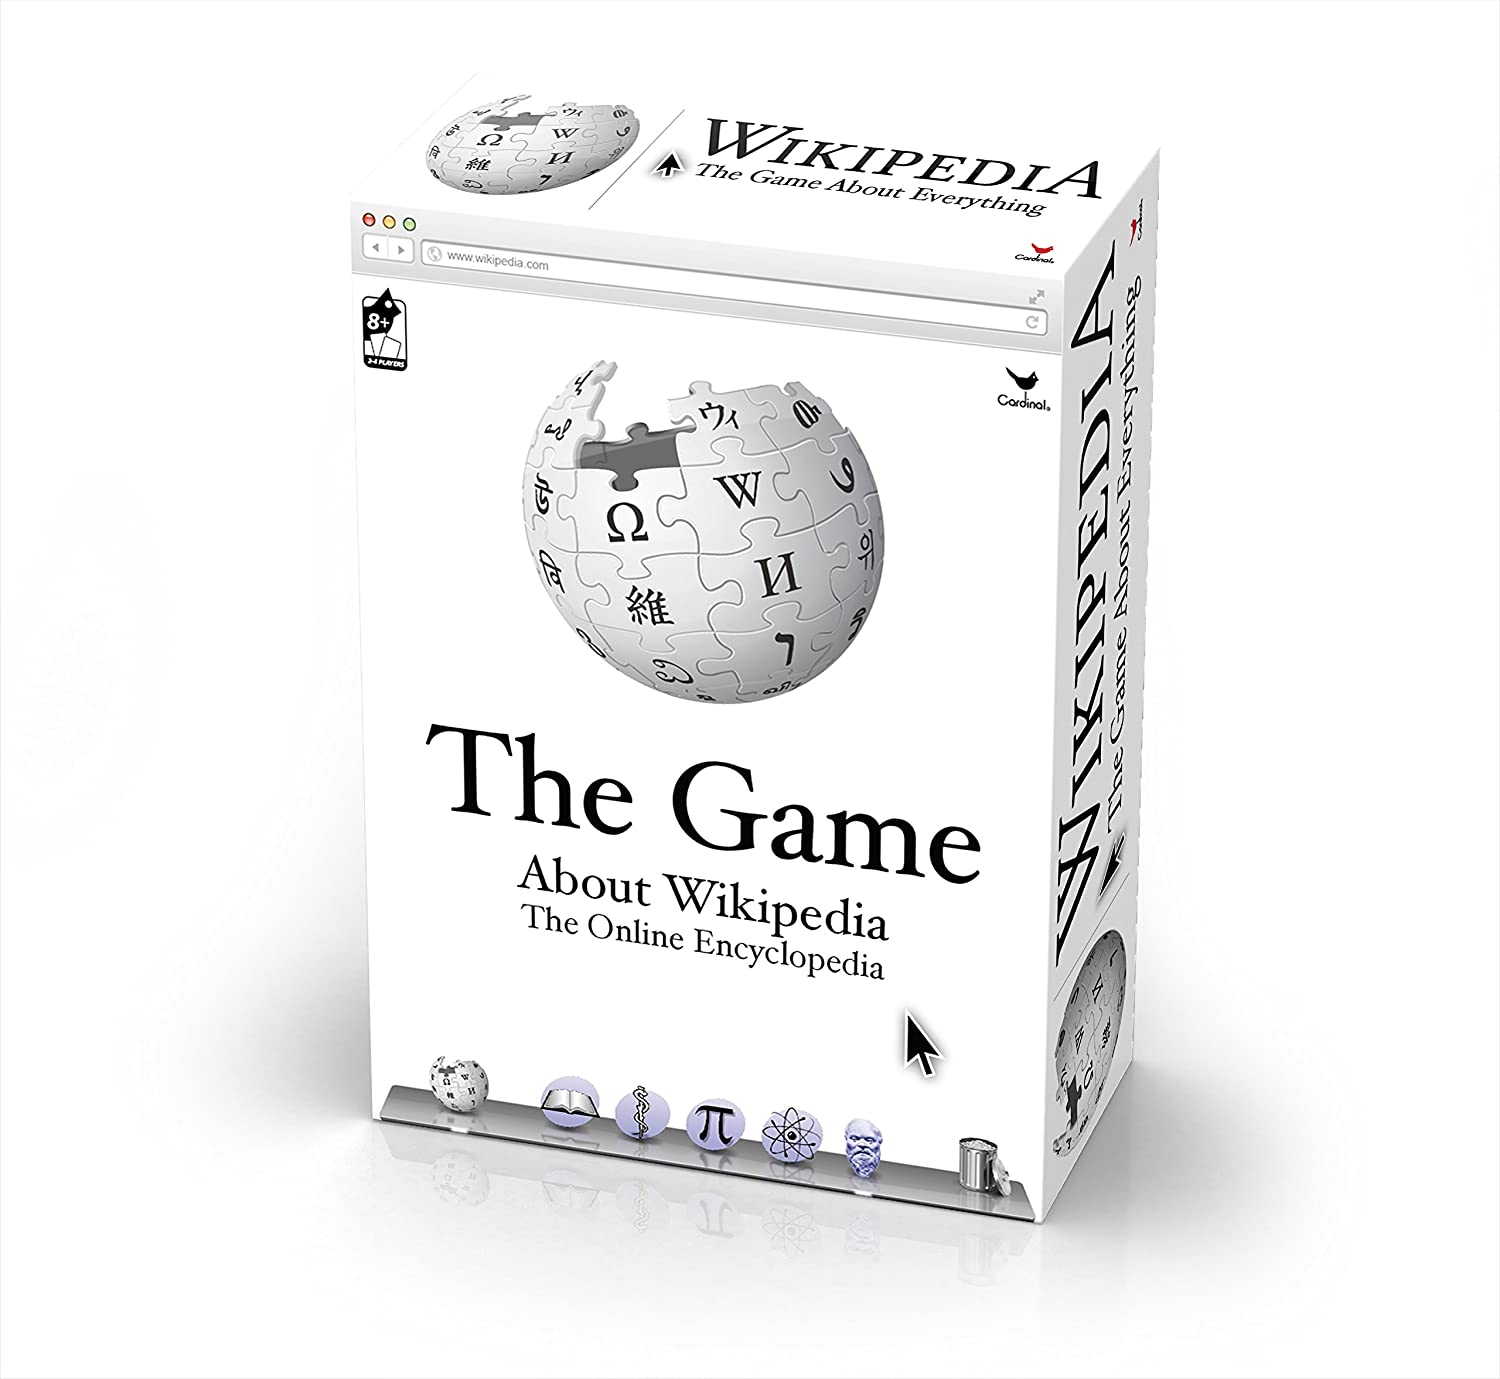 The Game about Wikipedia: Amazon.co.uk: Toys & Games